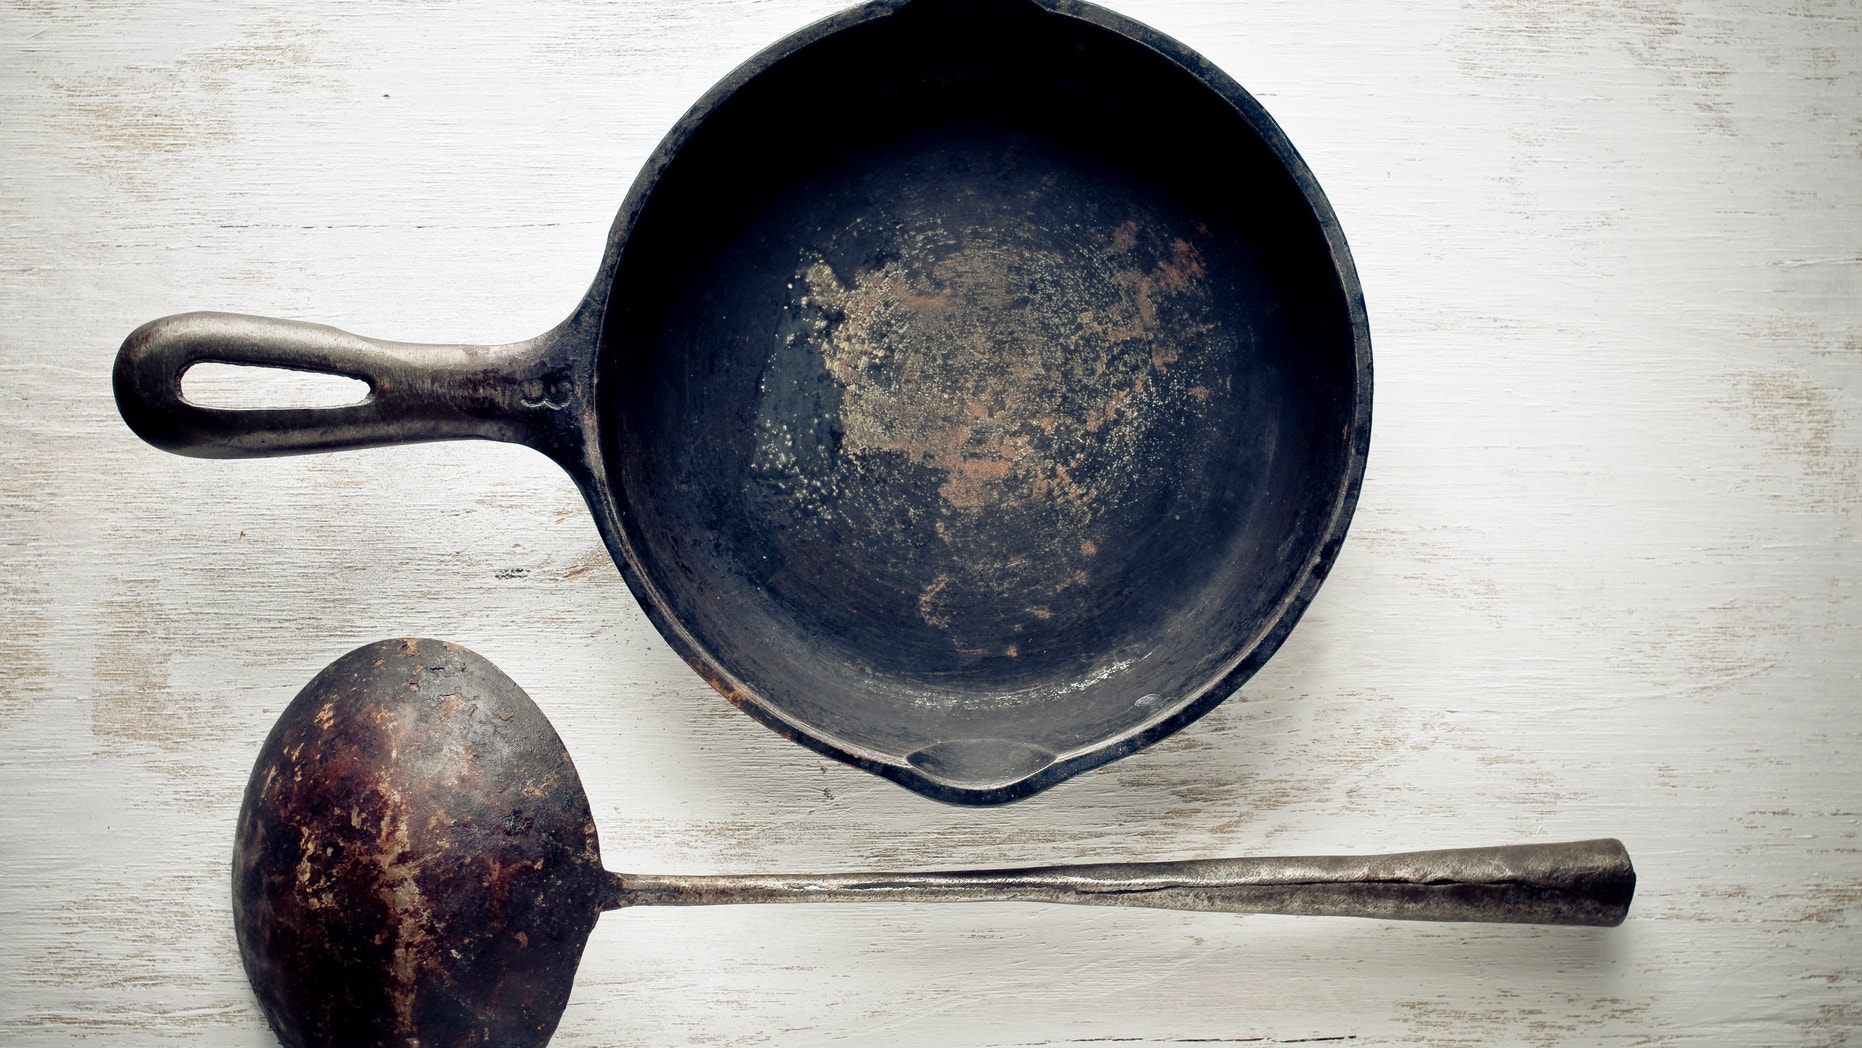 Is using rusty cookware really that big of a deal? | Fox News